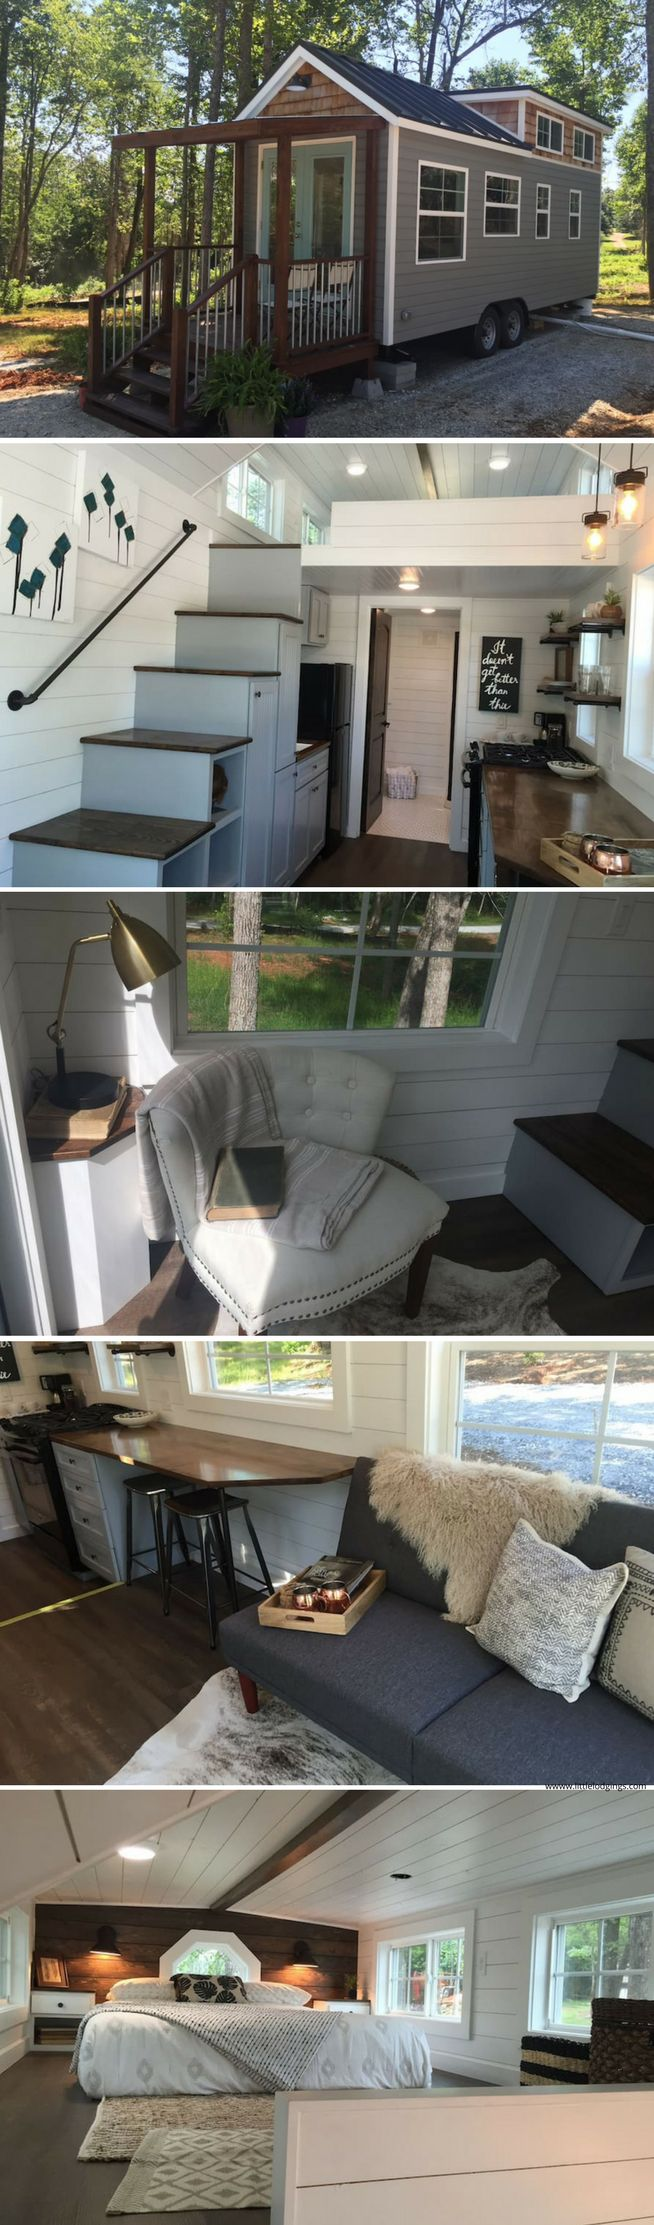 Converting sheds into livable space miniature homes and spaces - Shed Plans A Quiet Tiny House Retreat In Greer Sc Available For Rent On Airbnb Now You Can Build Any Shed In A Weekend Even If You Ve Zero Woodworking